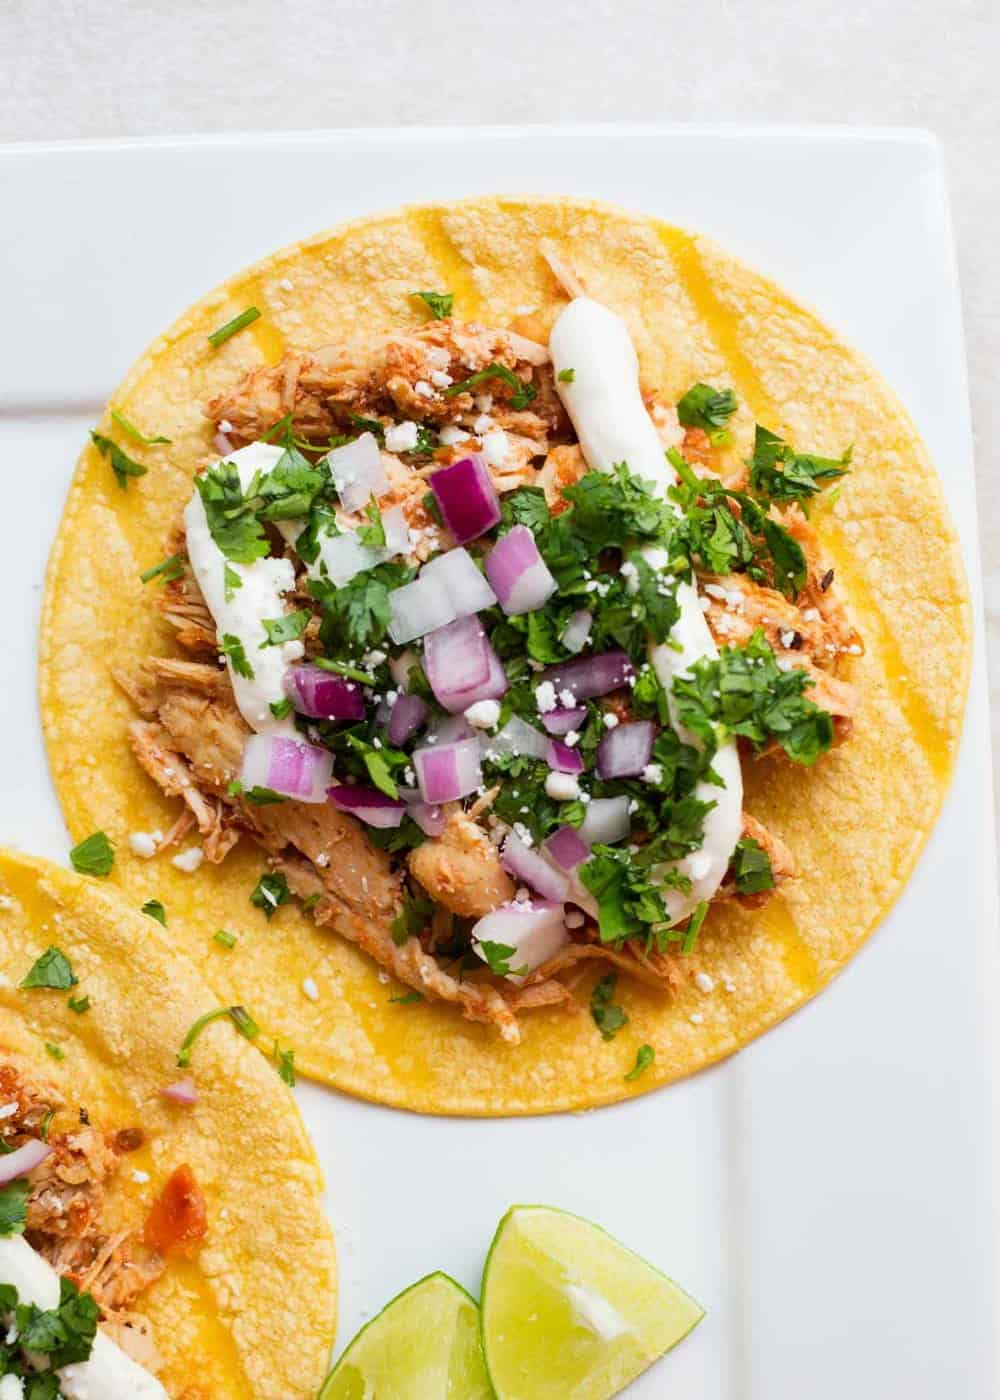 chicken tinga taco topped with crema, cilantro and red onion